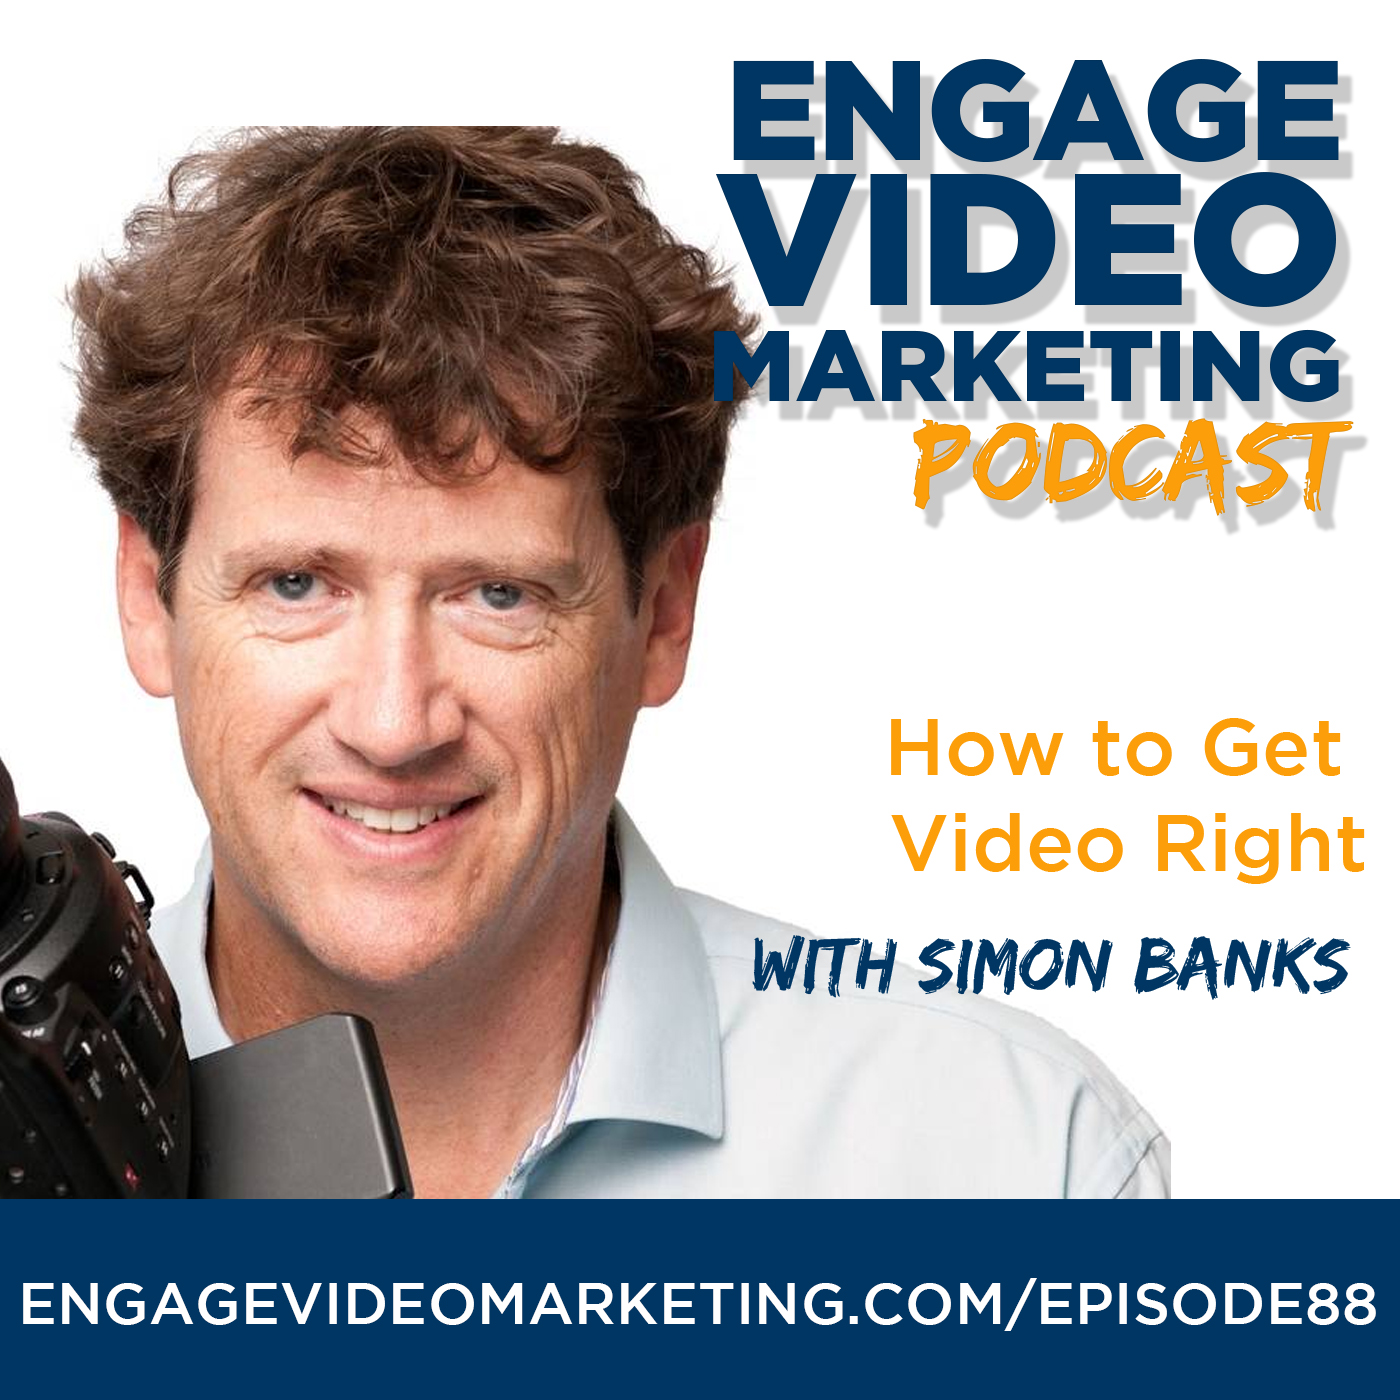 How to Get Video Right with Simon Banks